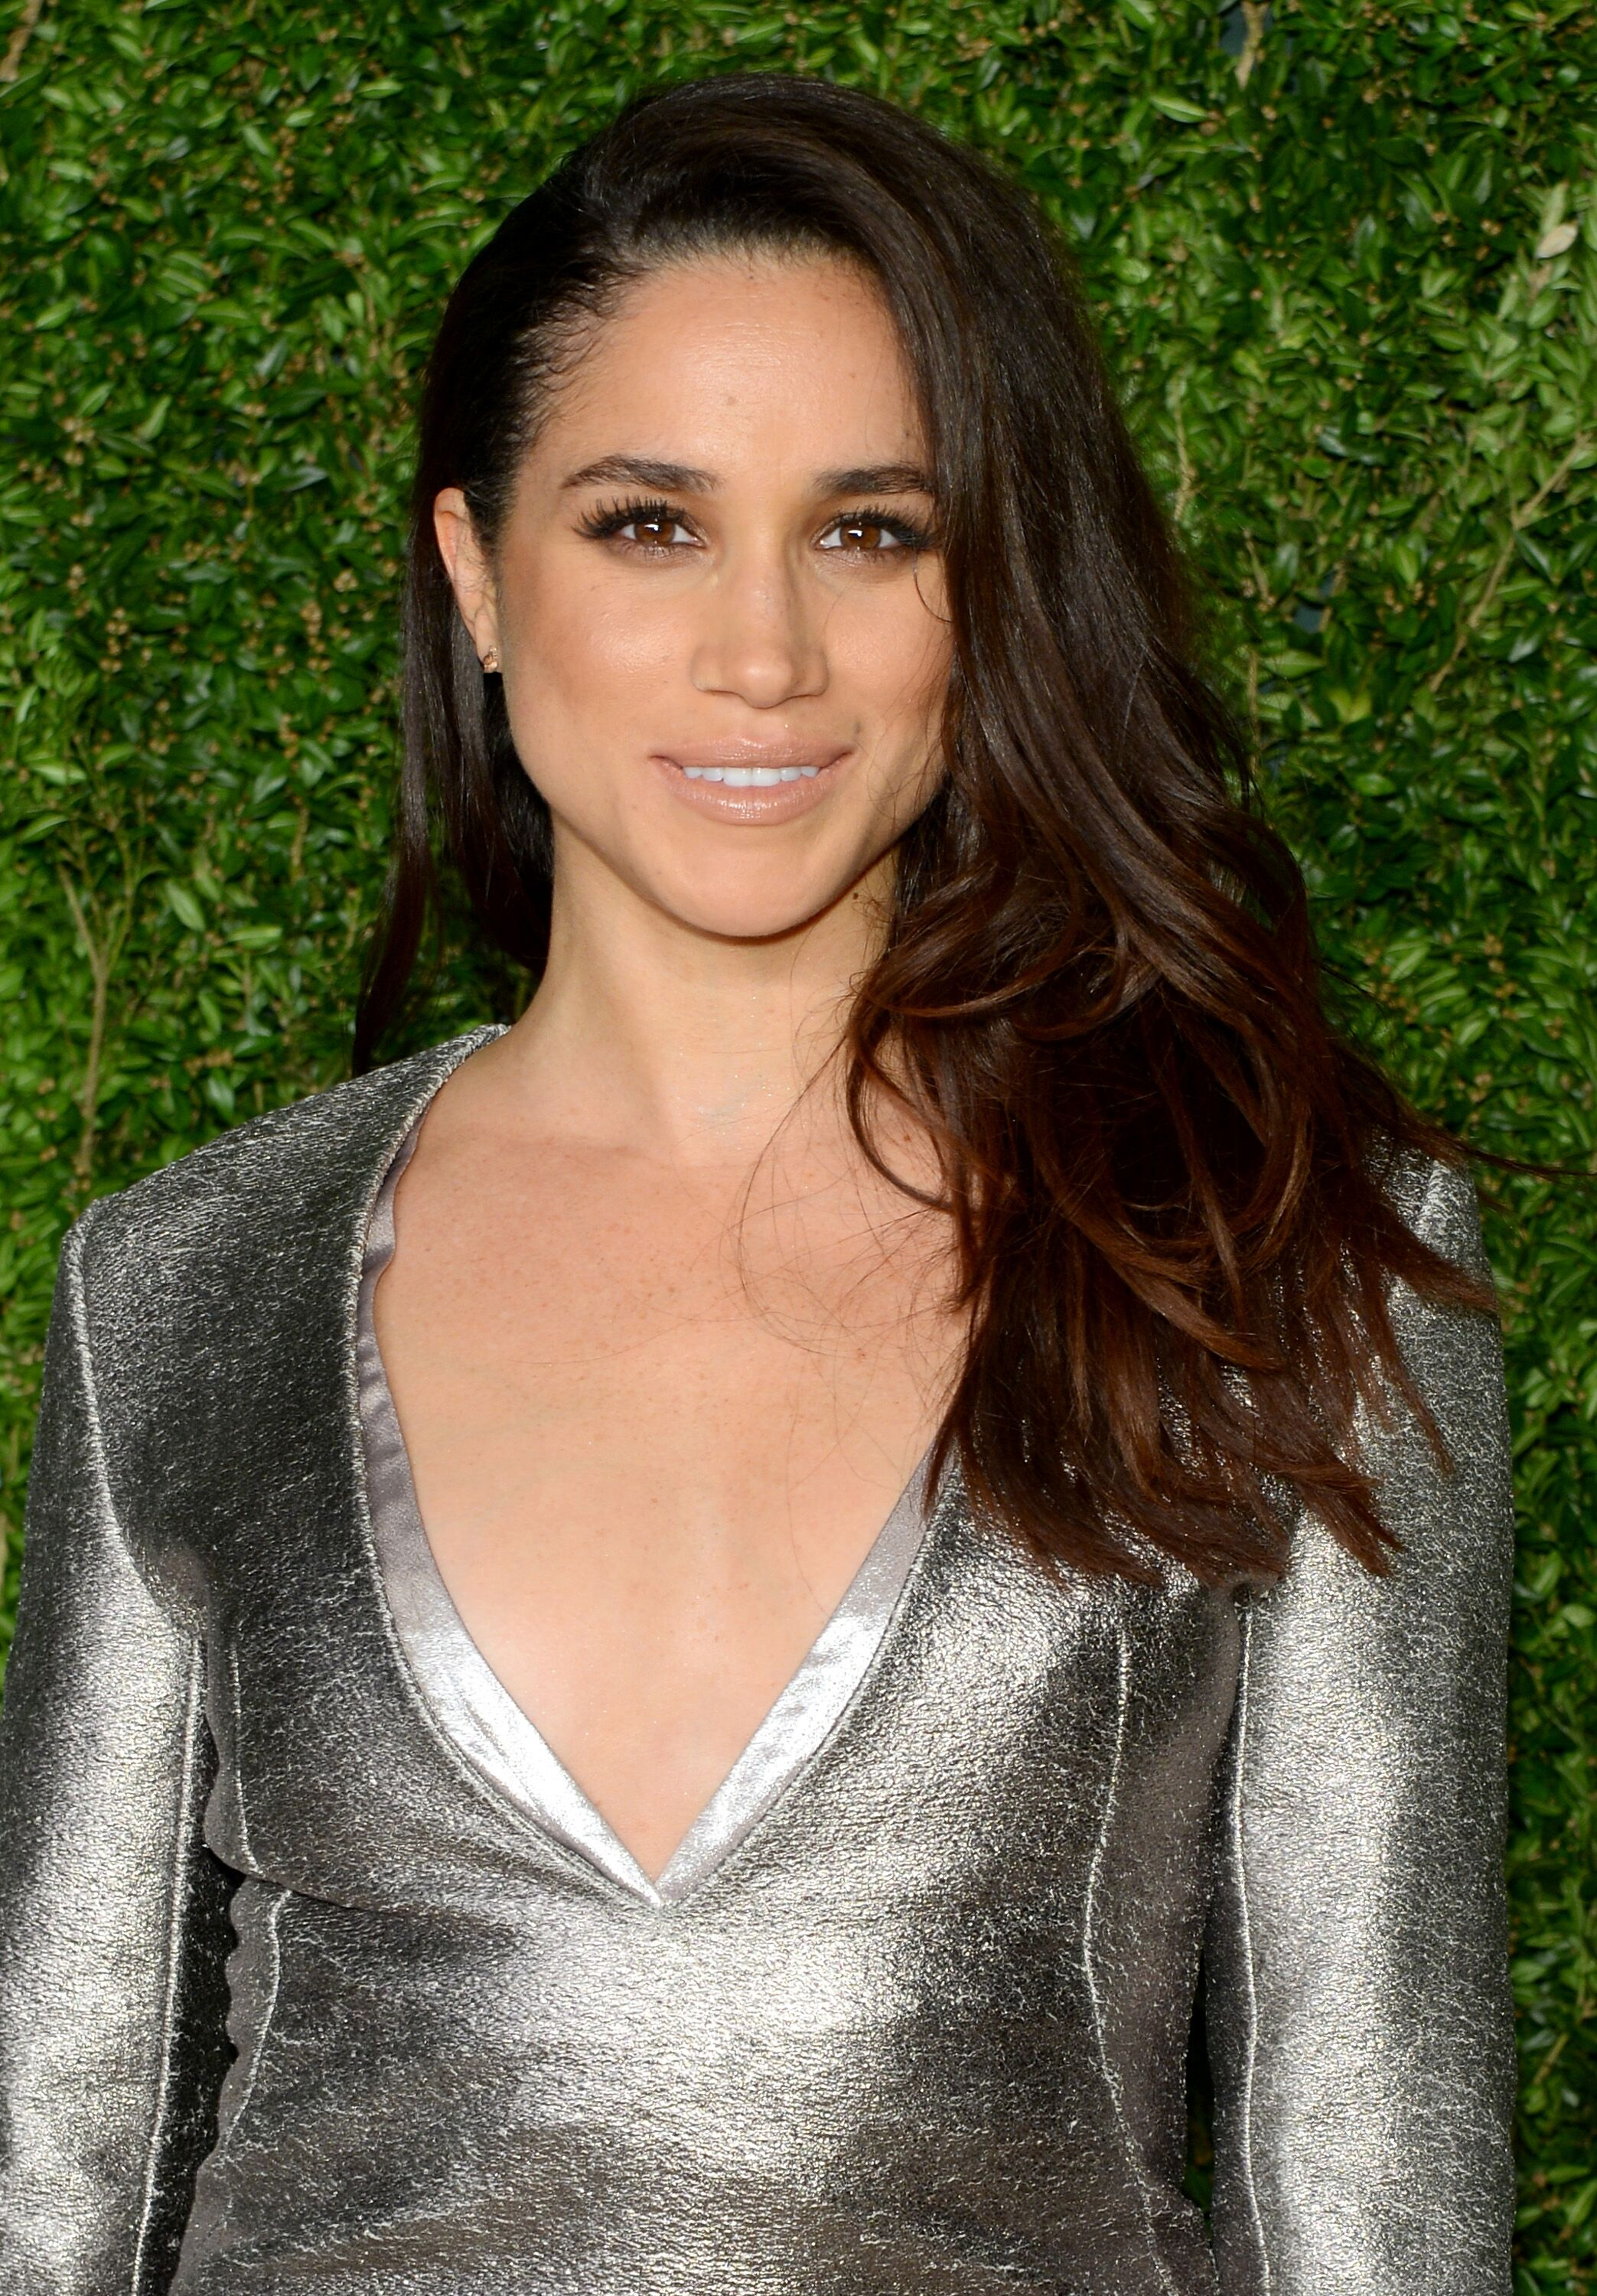 Meghan Markle participe aux 12e gala annuels du fonds CFDA / Vogue Fashion Fund au Spring Studios le 2 novembre 2015 à New York | Photo: Getty Images